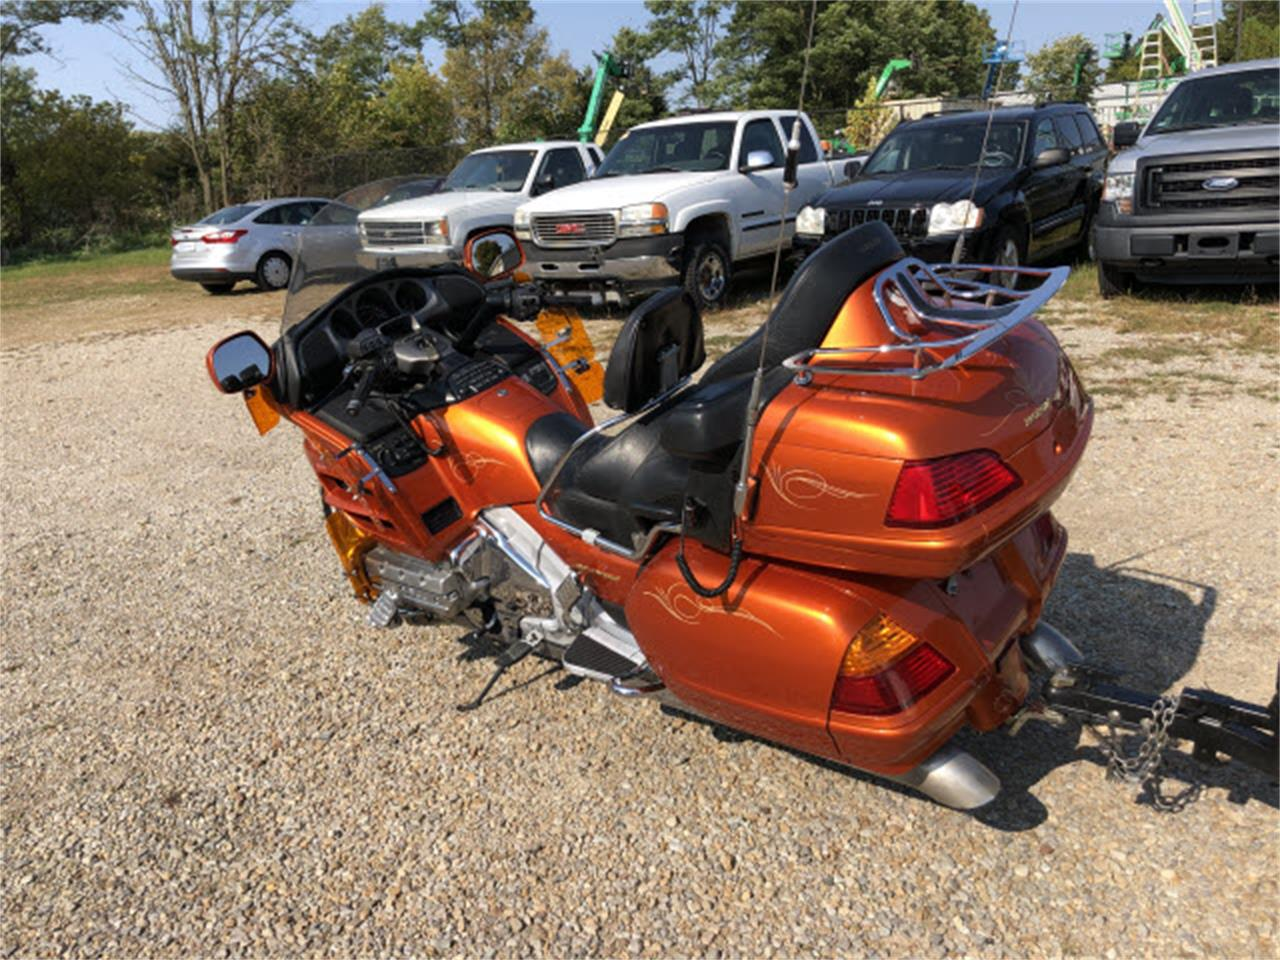 2002 Honda Motorcycle (CC-1413527) for sale in Marysville, Ohio